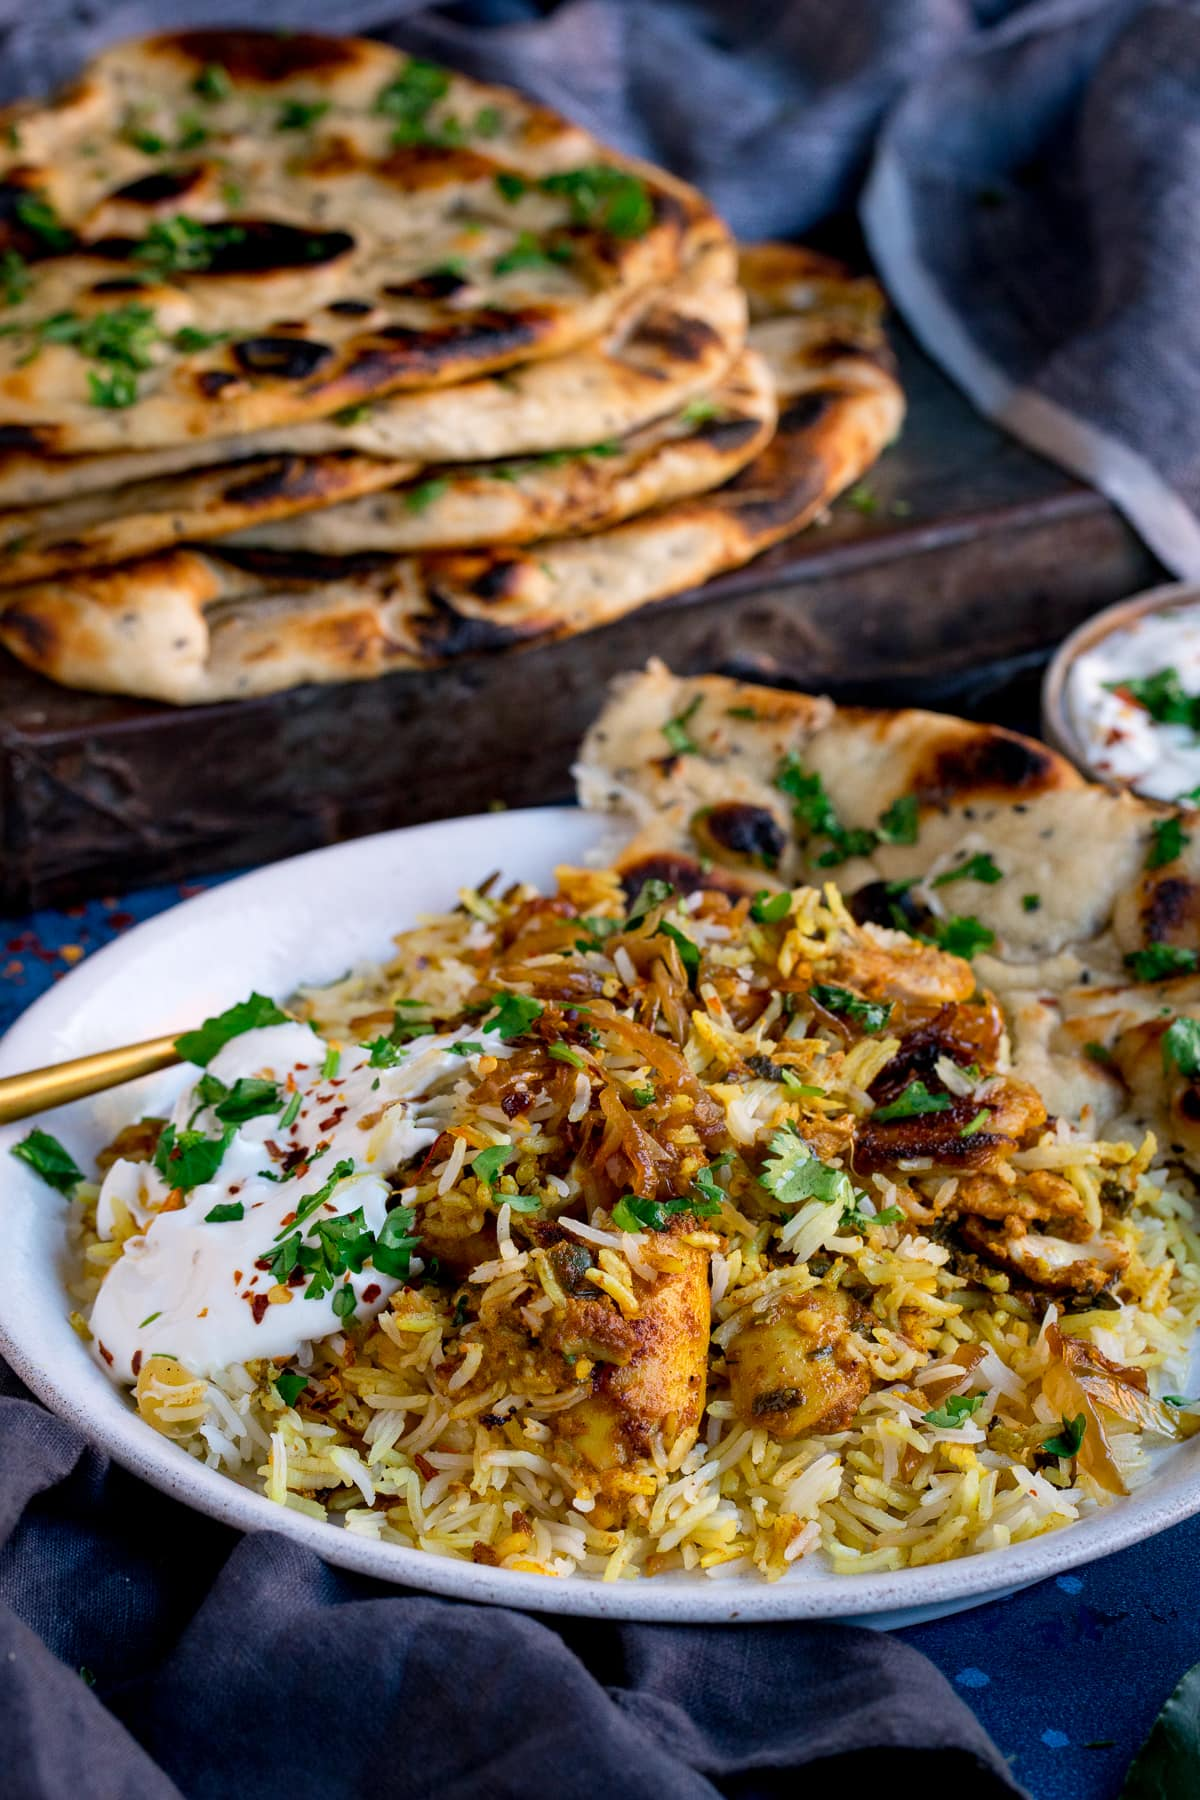 Plate of chicken biryani with pile of naan breads in the background